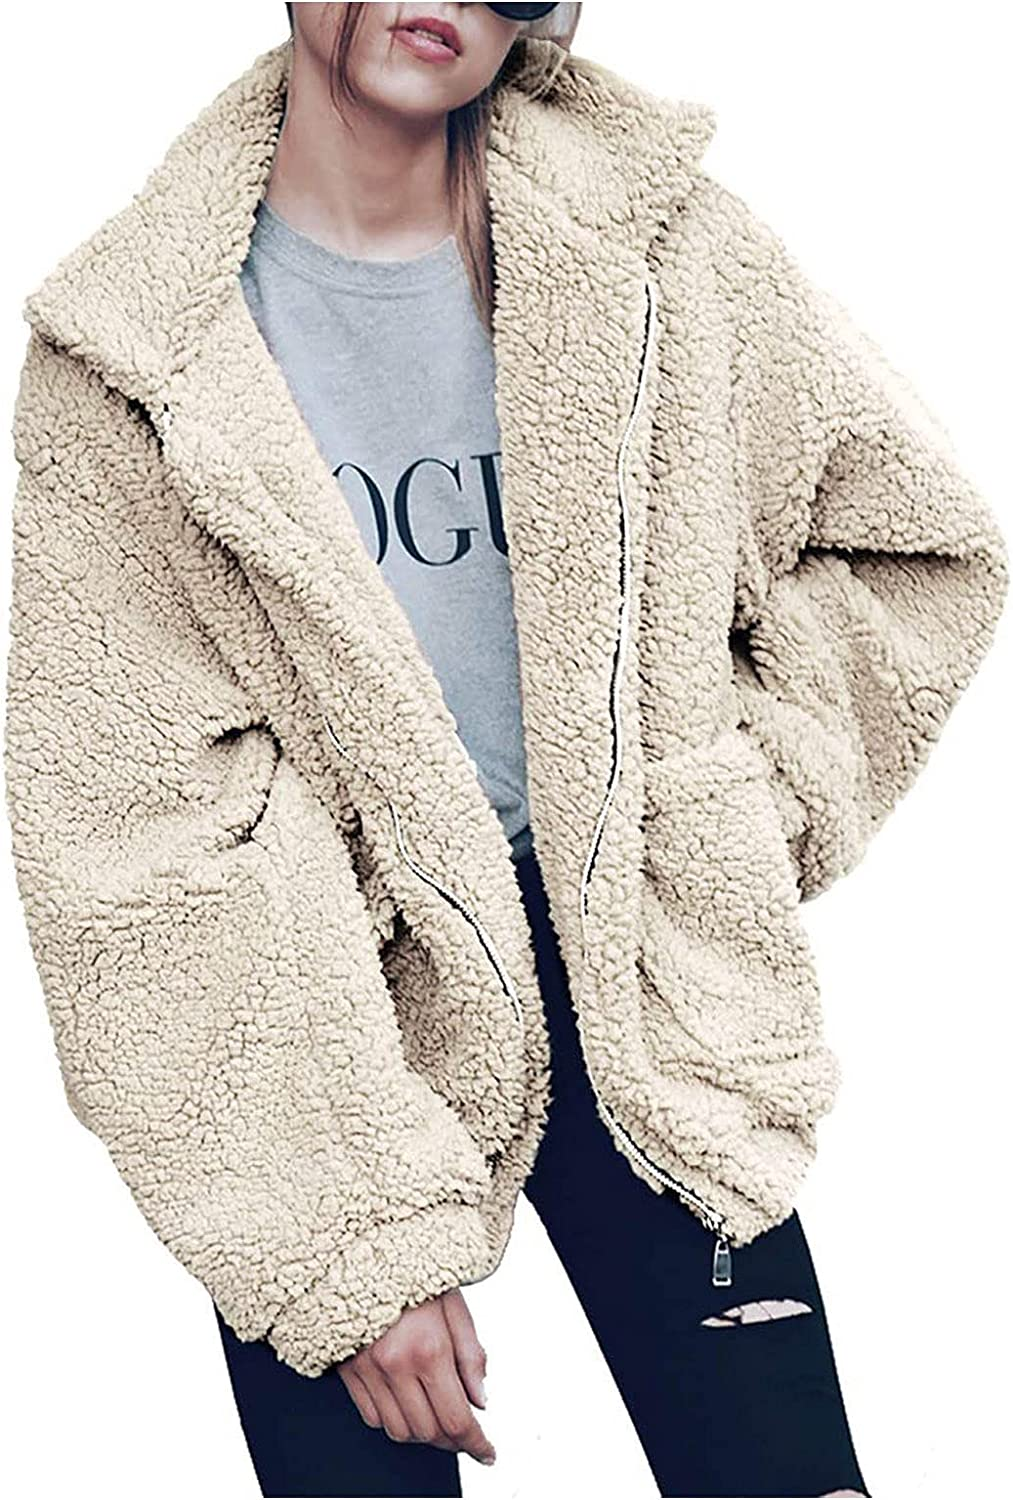 GERsome Ladies Warm Faux Furry Coat for Women's Winter Oversized Turn Down Collar Jacket Fashion Zipper Pockets Outerwear White